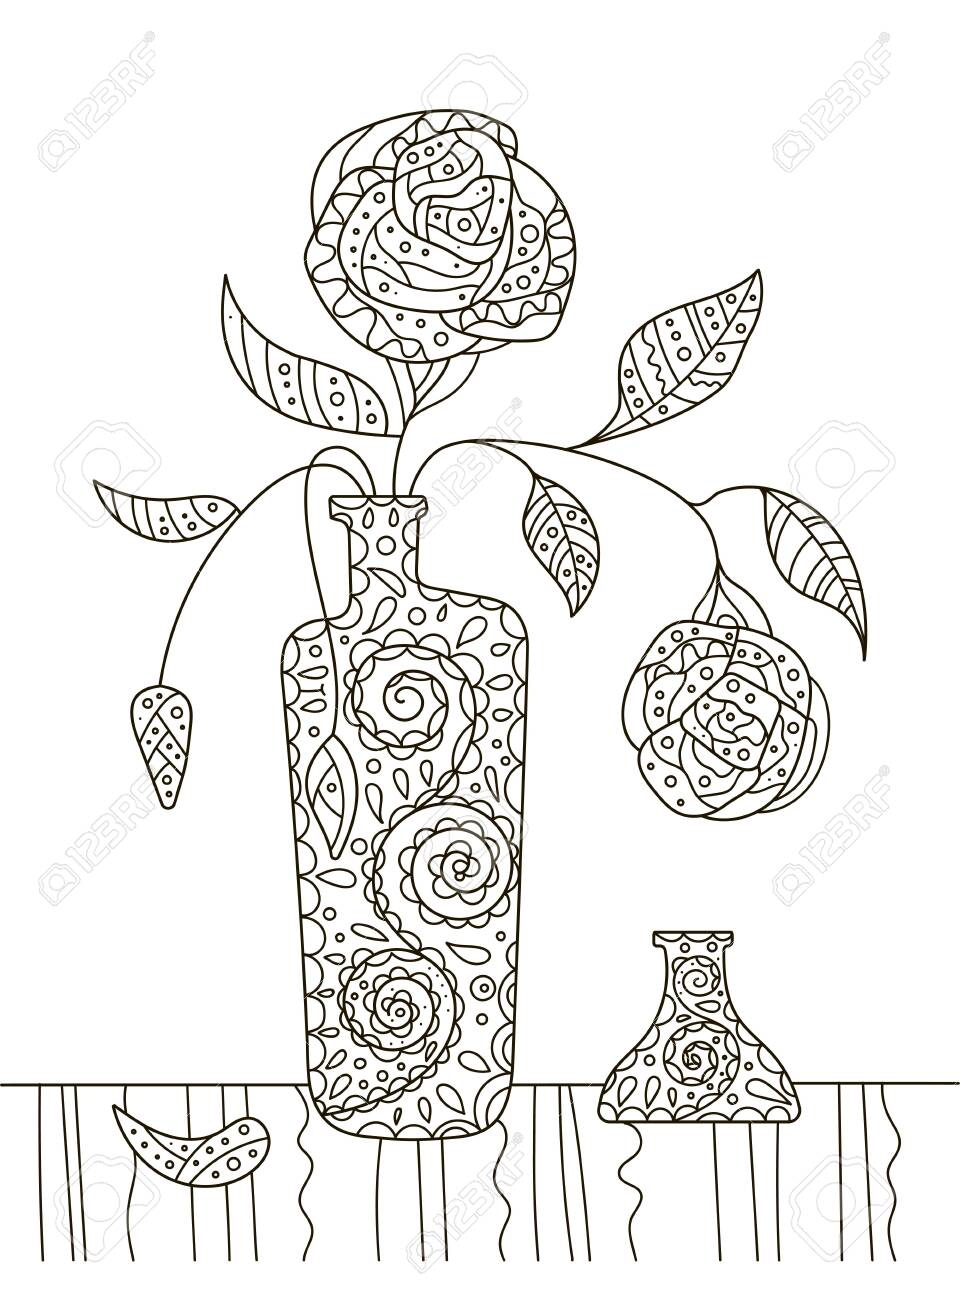 Adult Coloring Pages Flowers Beautiful Awesome Coloring Pages for ... | 1300x960